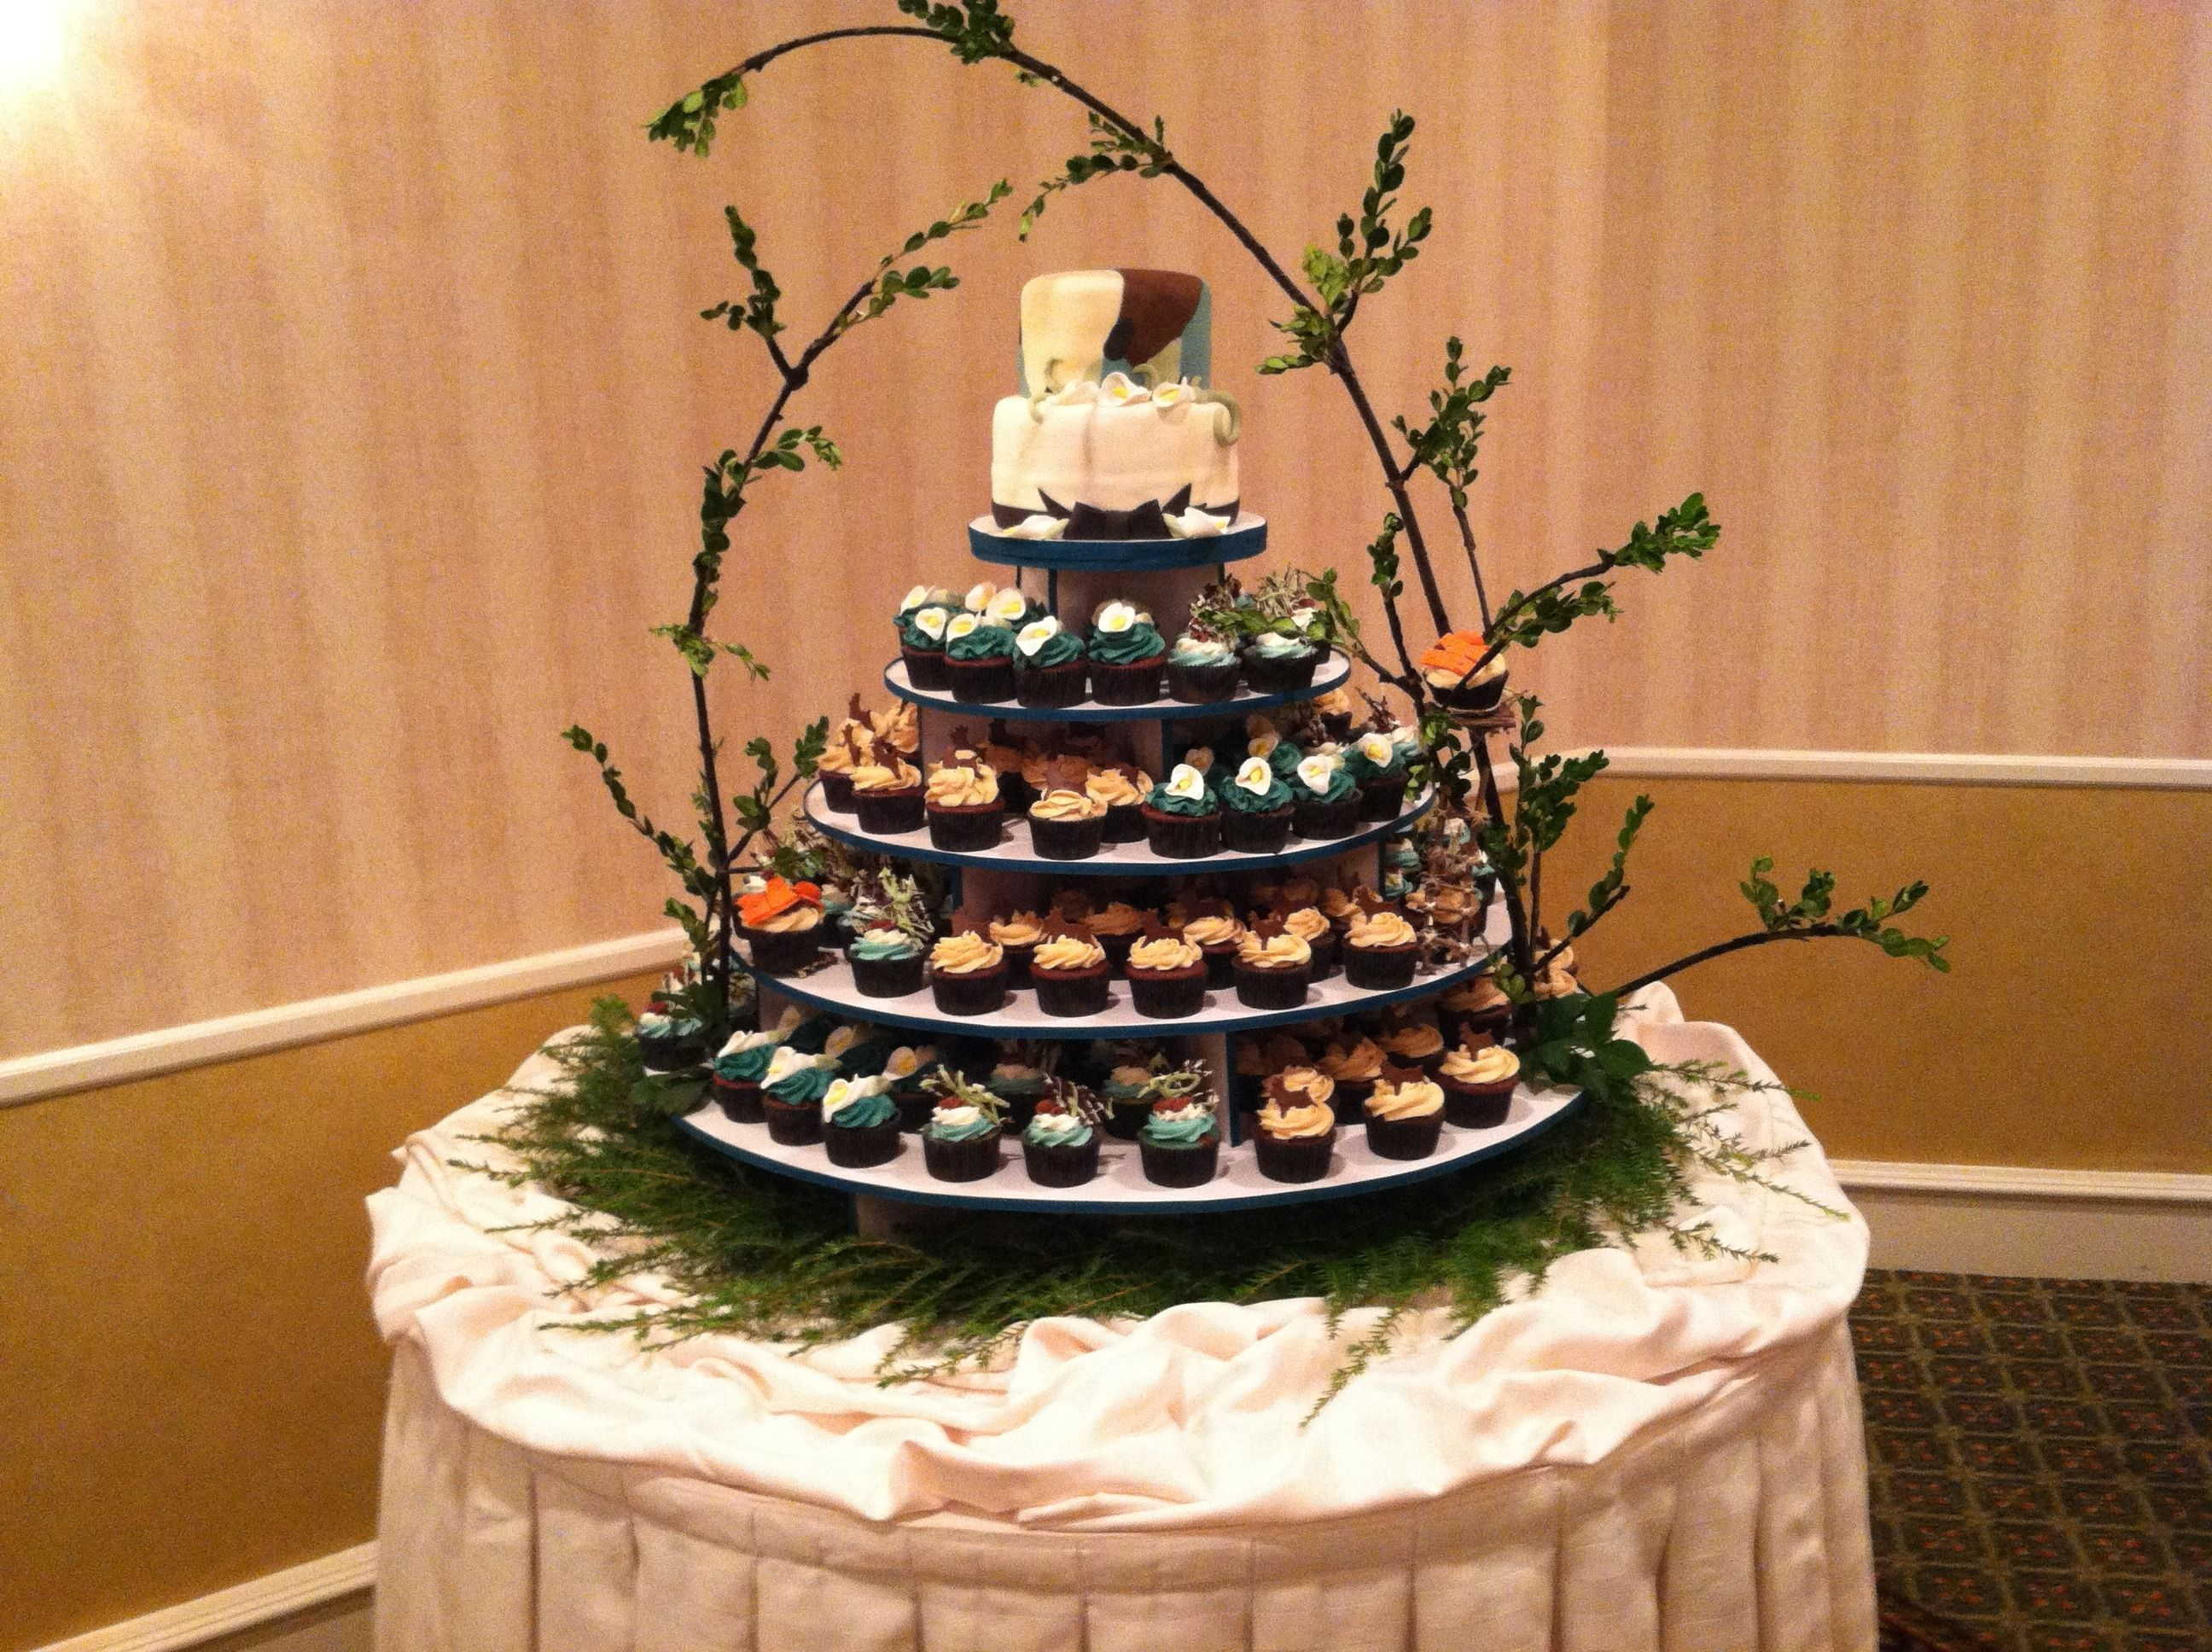 Camouflage Cupcake Tower Other Mixed Shaped Wedding Cakes Wedding Cakes With Cupcakes Wedding Cake Pinterest Fishing Wedding Cakes